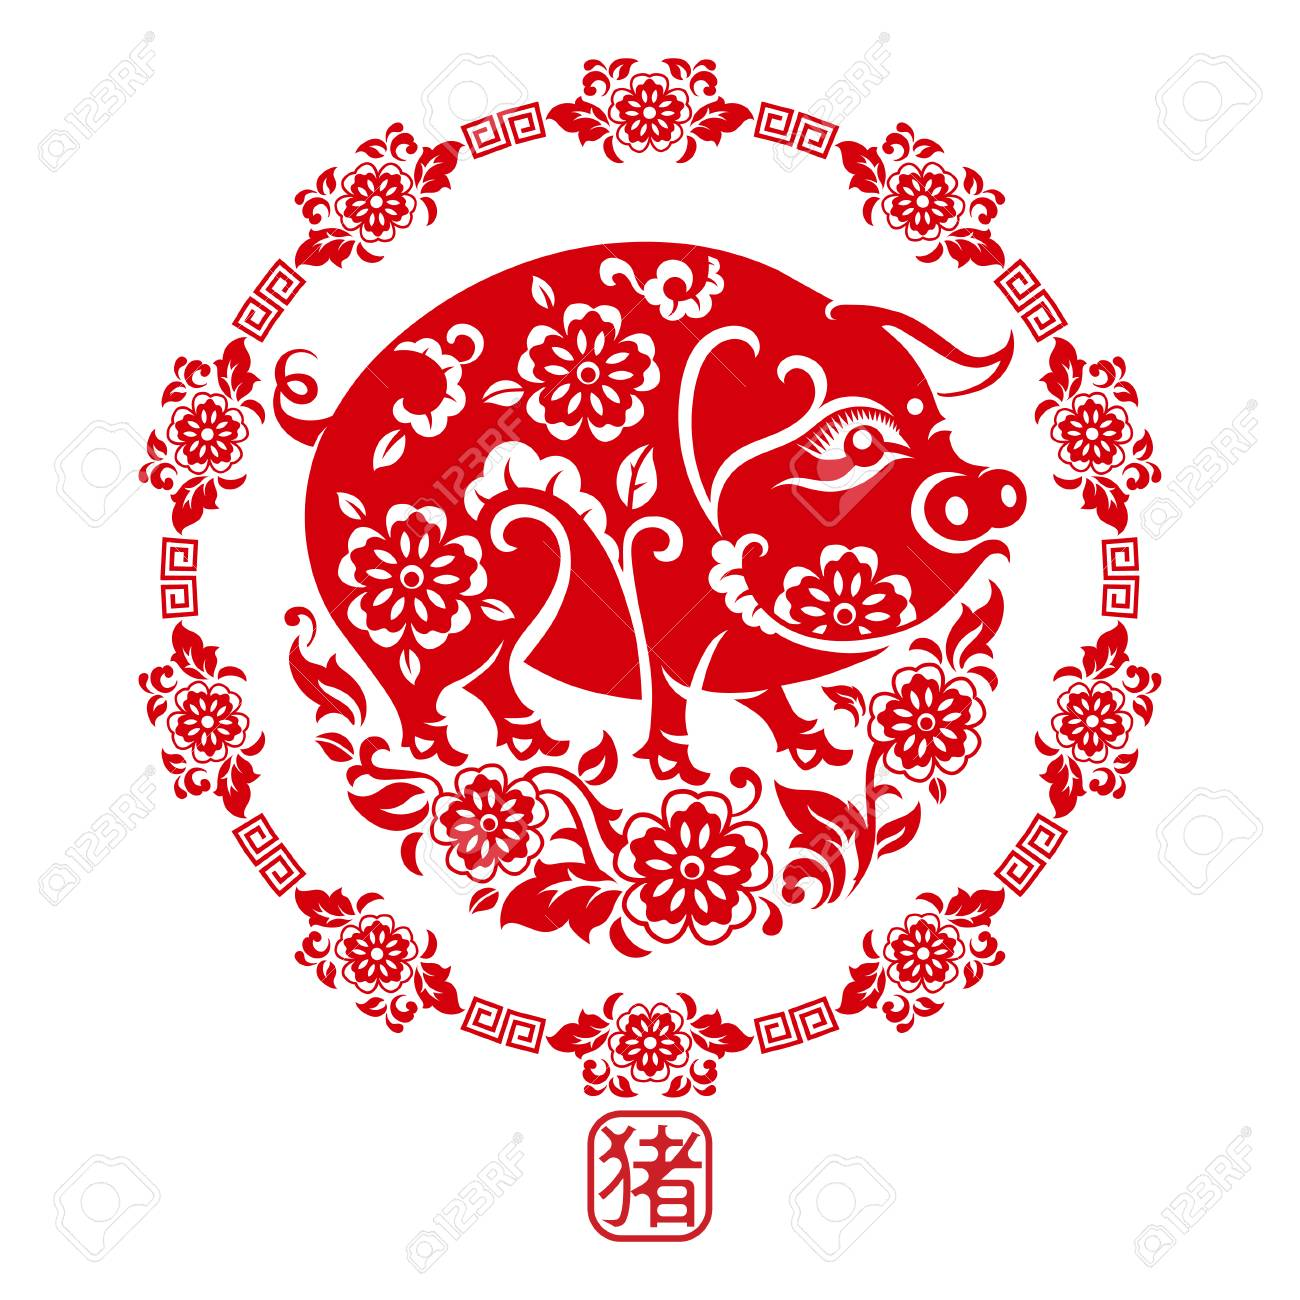 Happy Chinese New Year 2019 Zodiac Sign With Red Paper Cut Art And Craft Style On